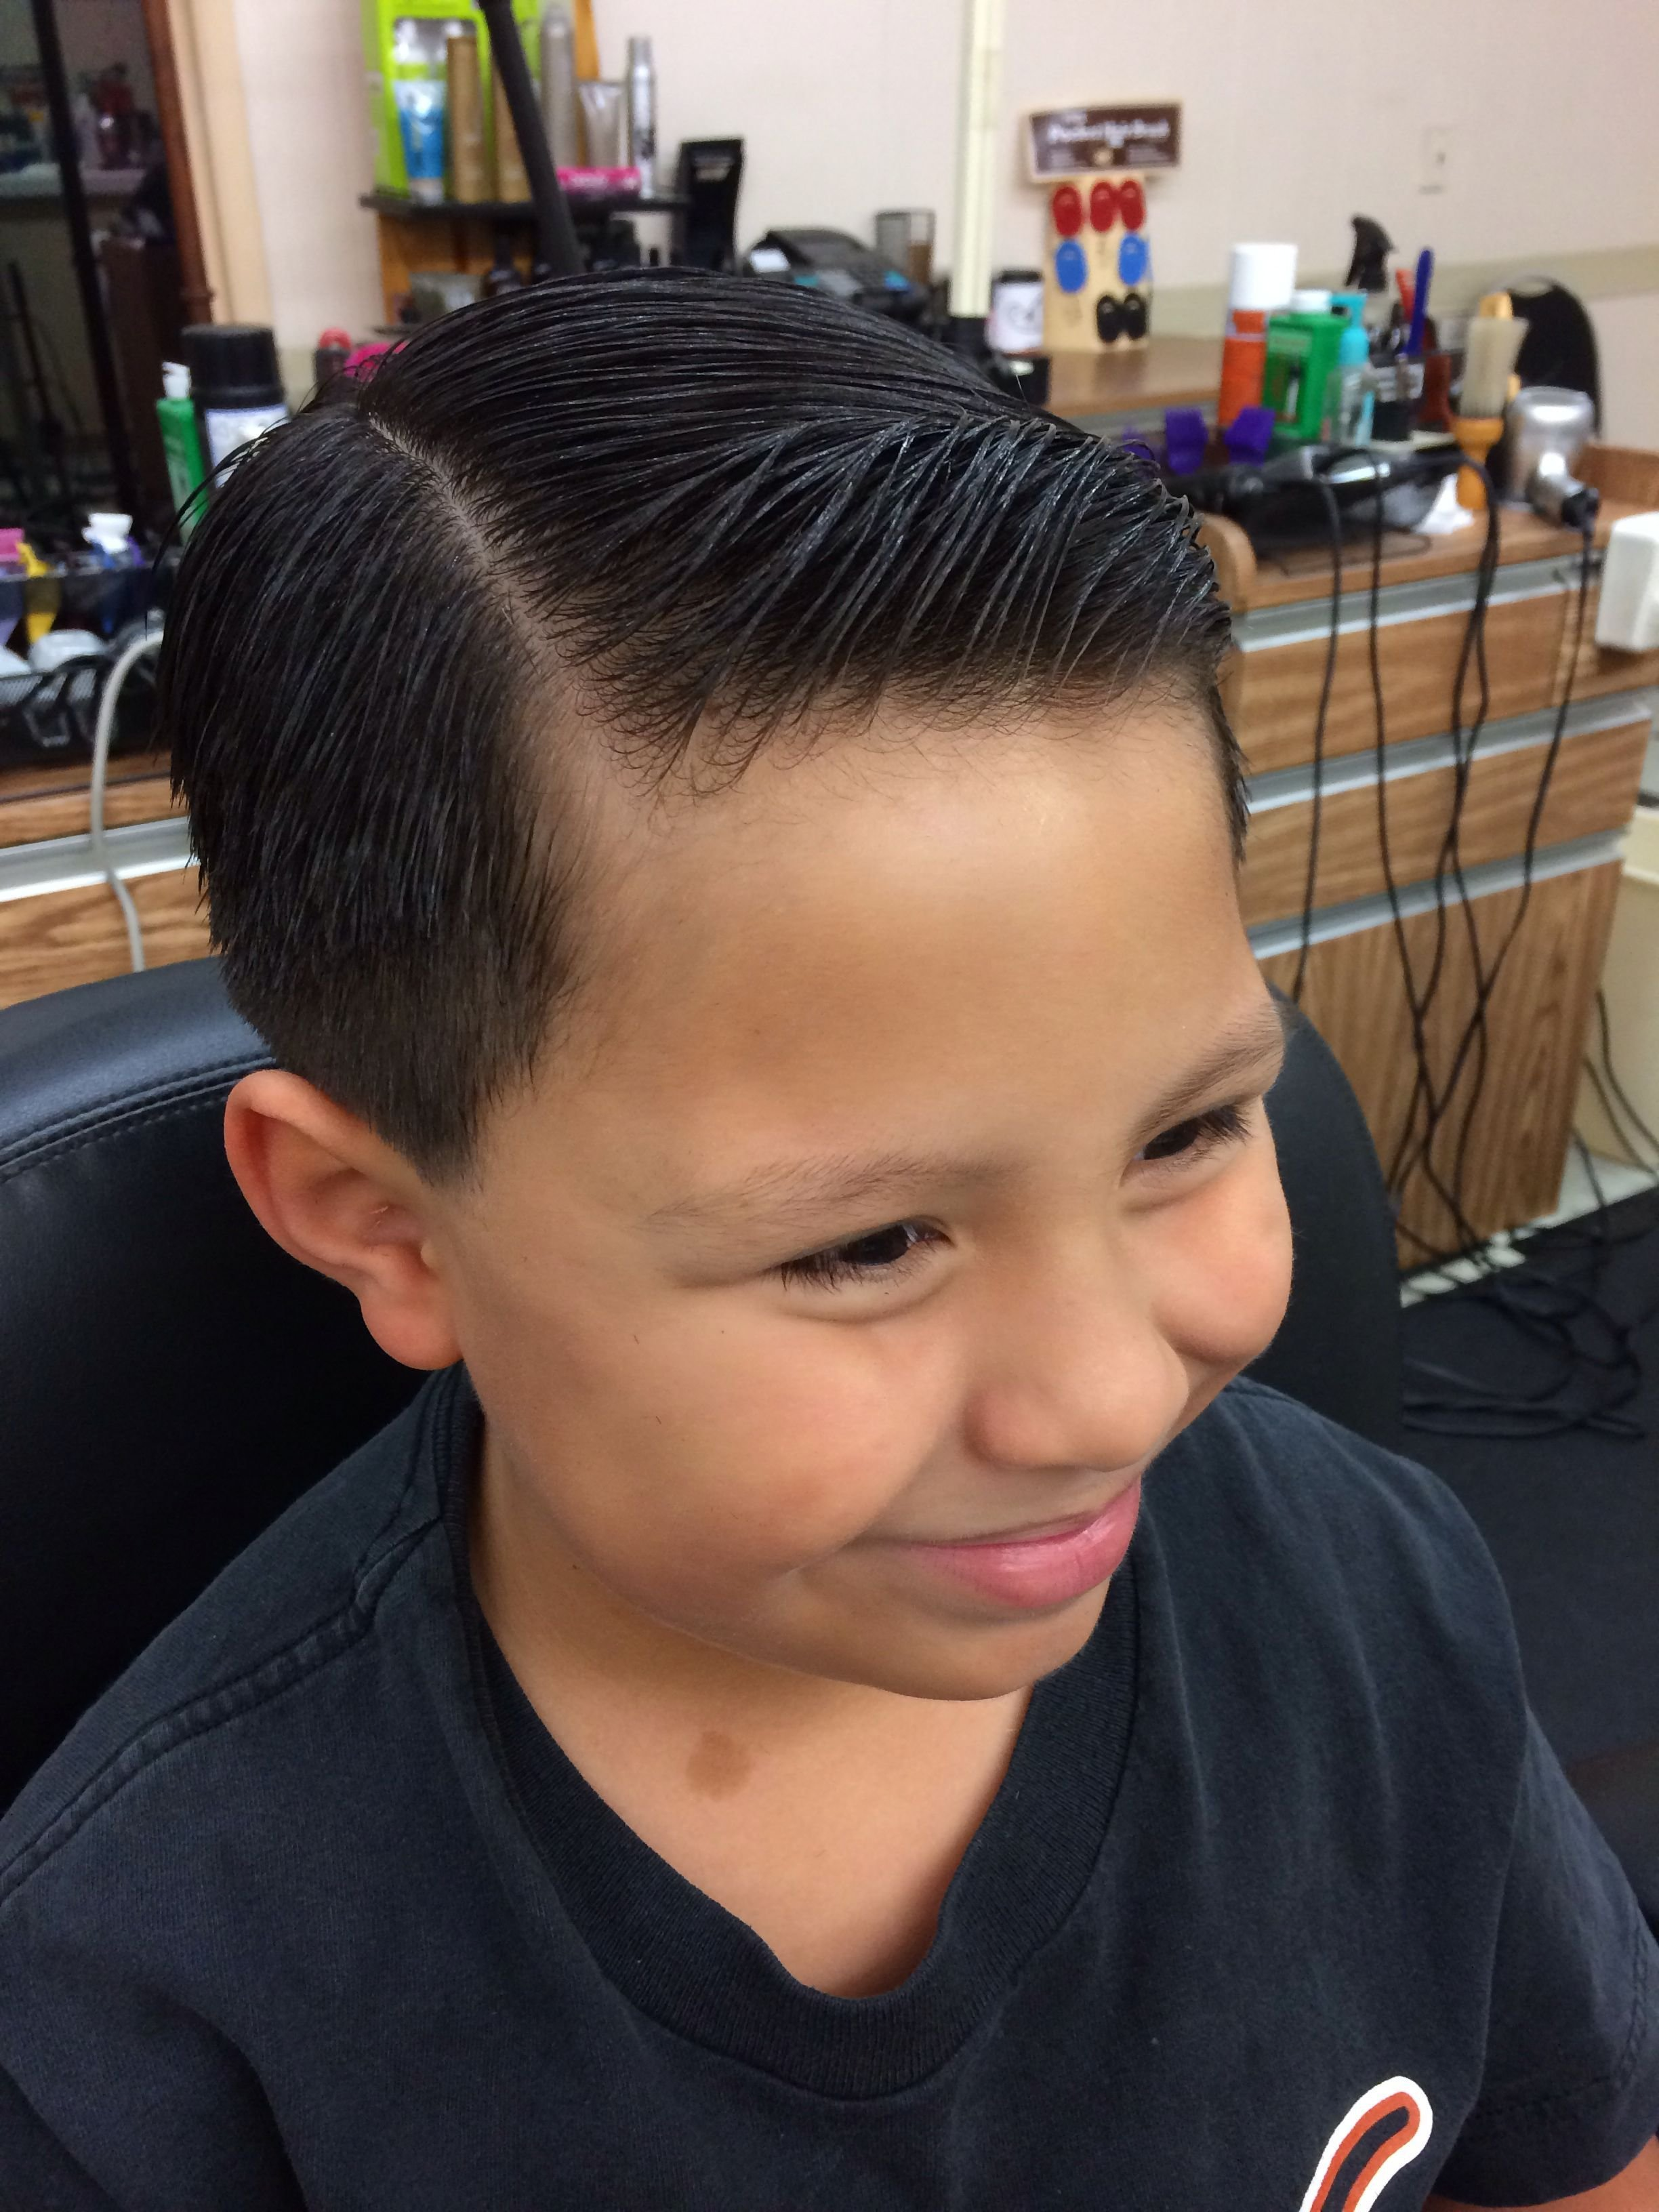 The Best Little Boys Haircut Barber Shop Hair Cuts Boy Pictures